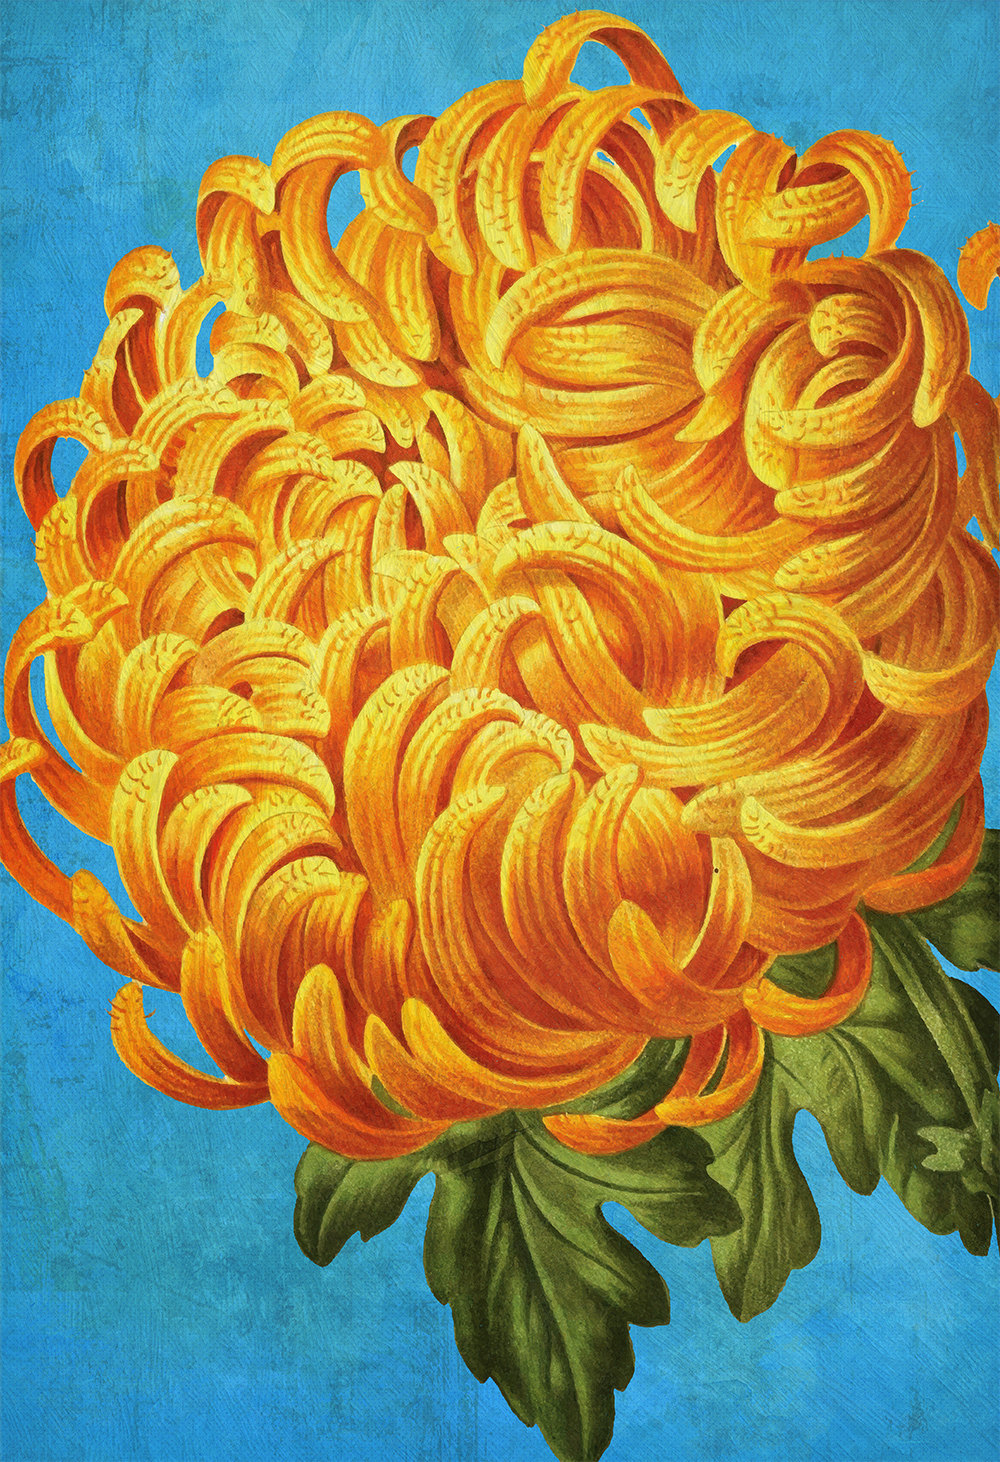 Chrysanthemum Print Chrysanthemum art botanical print flower kitchen ...